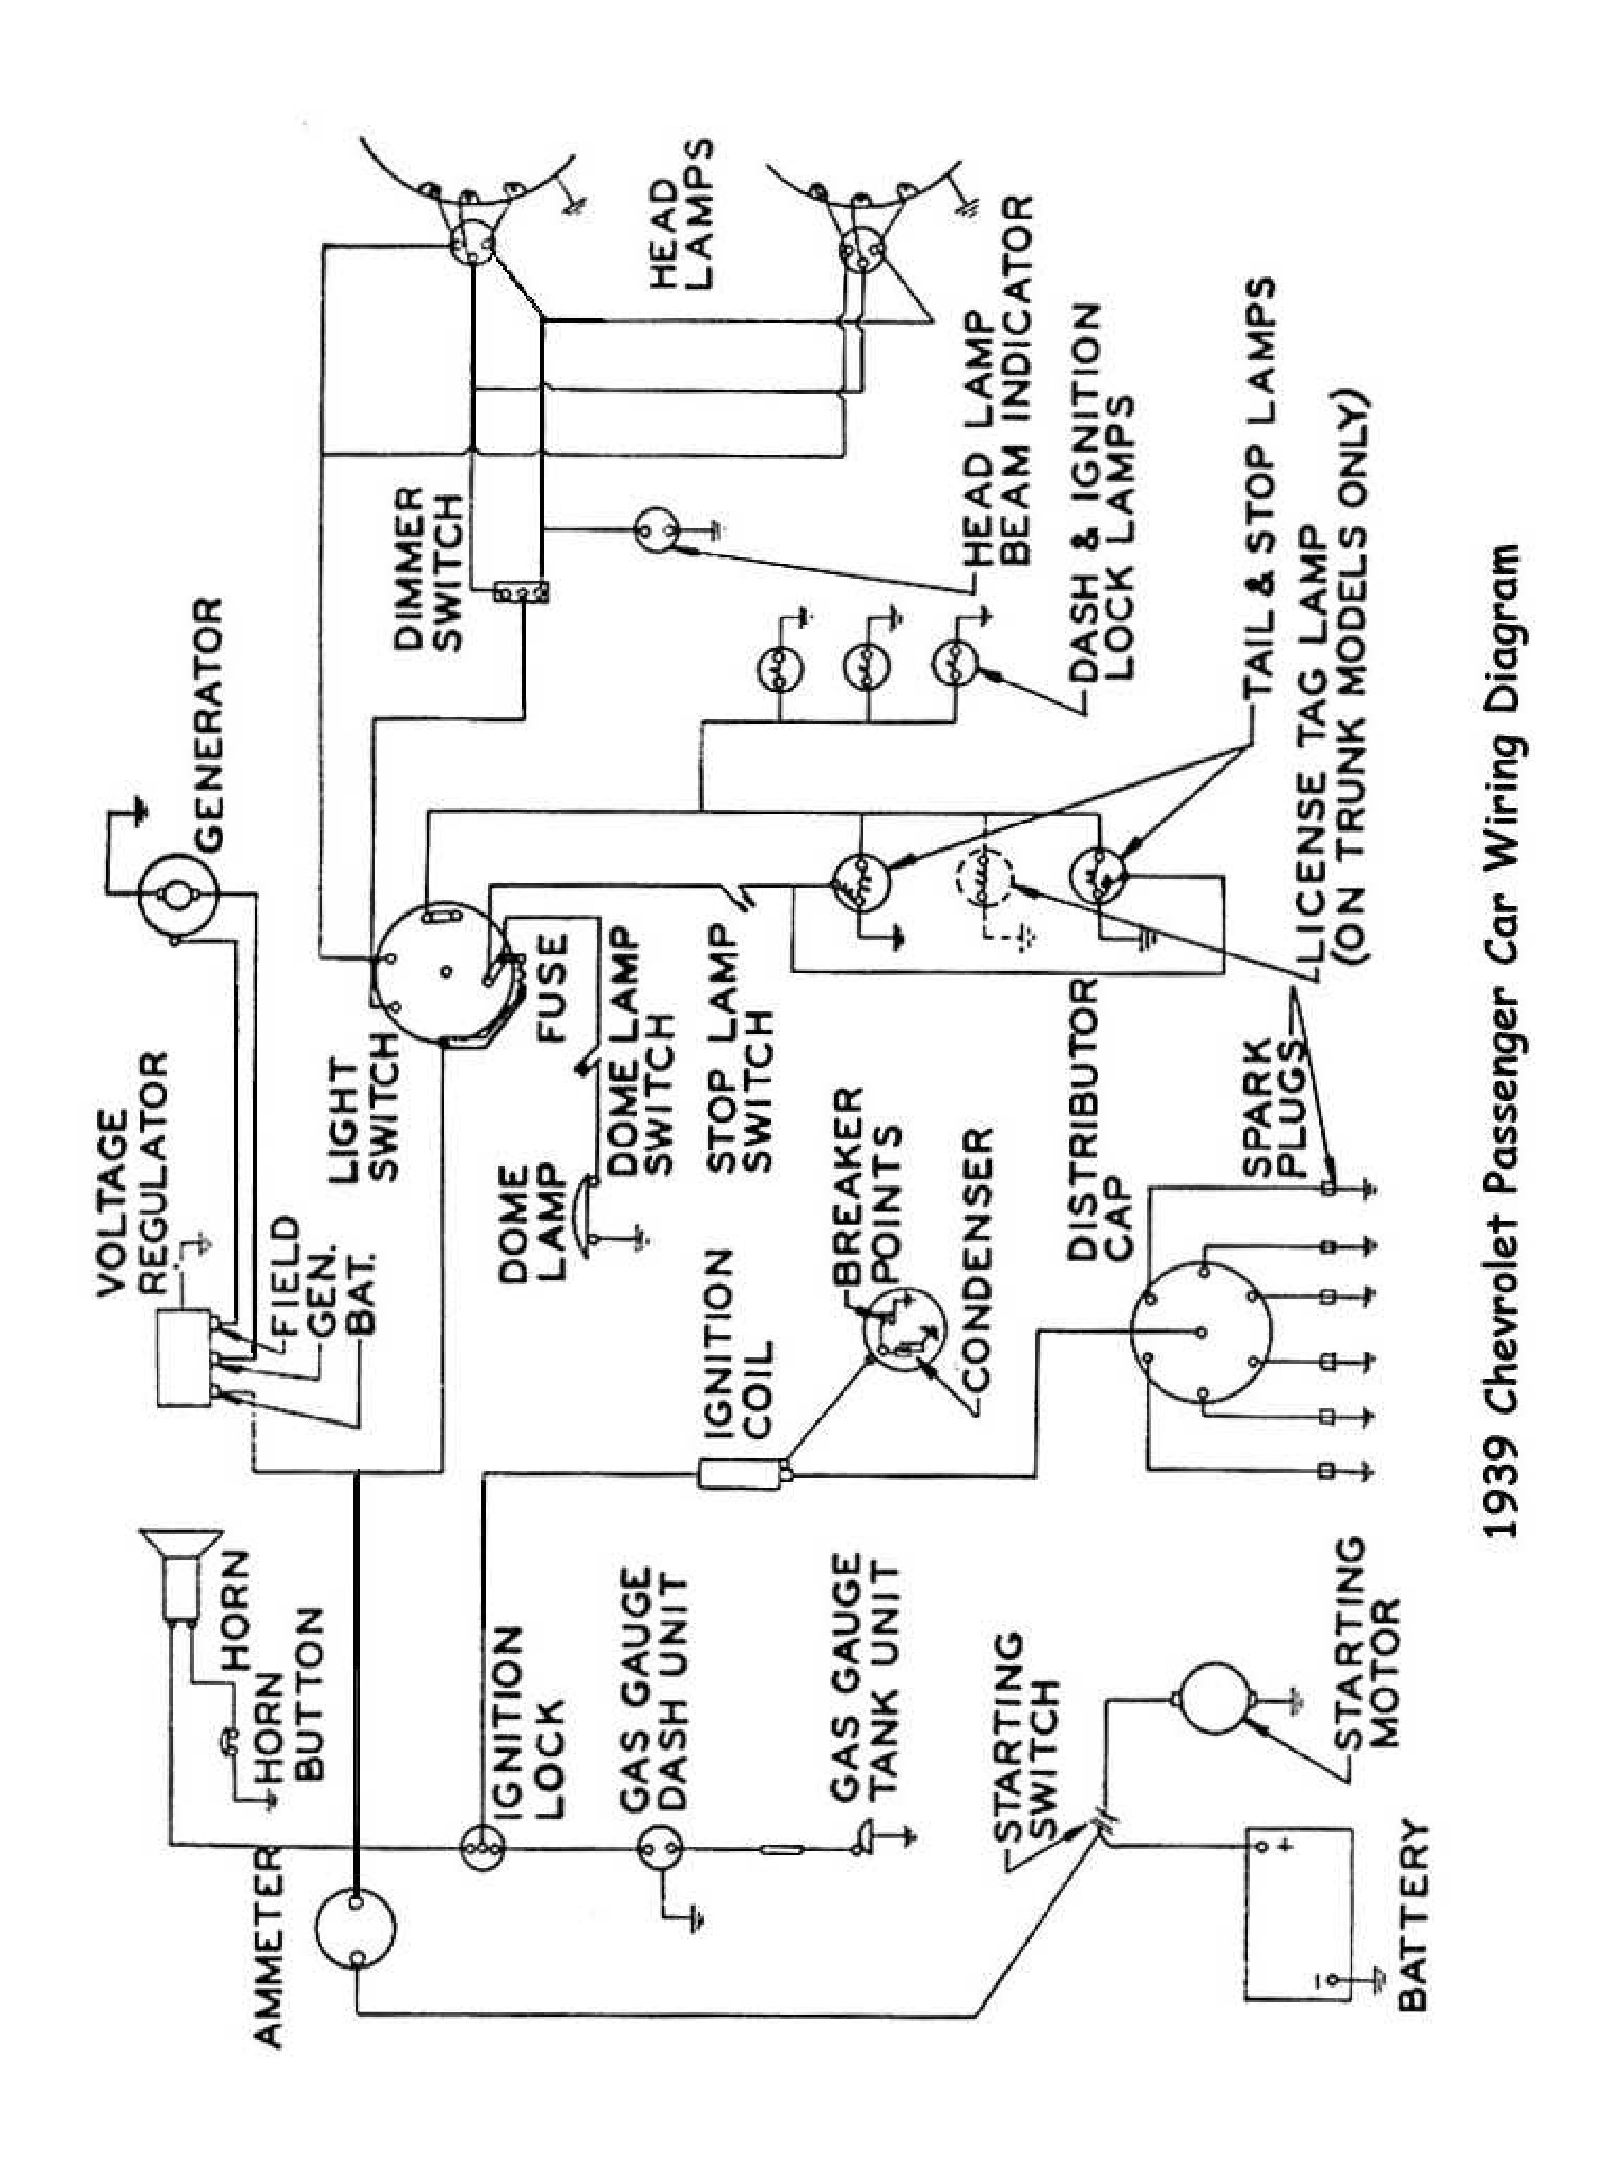 hot rod wiring diagram download pilot light switch 1962 chevy c10 harnes database